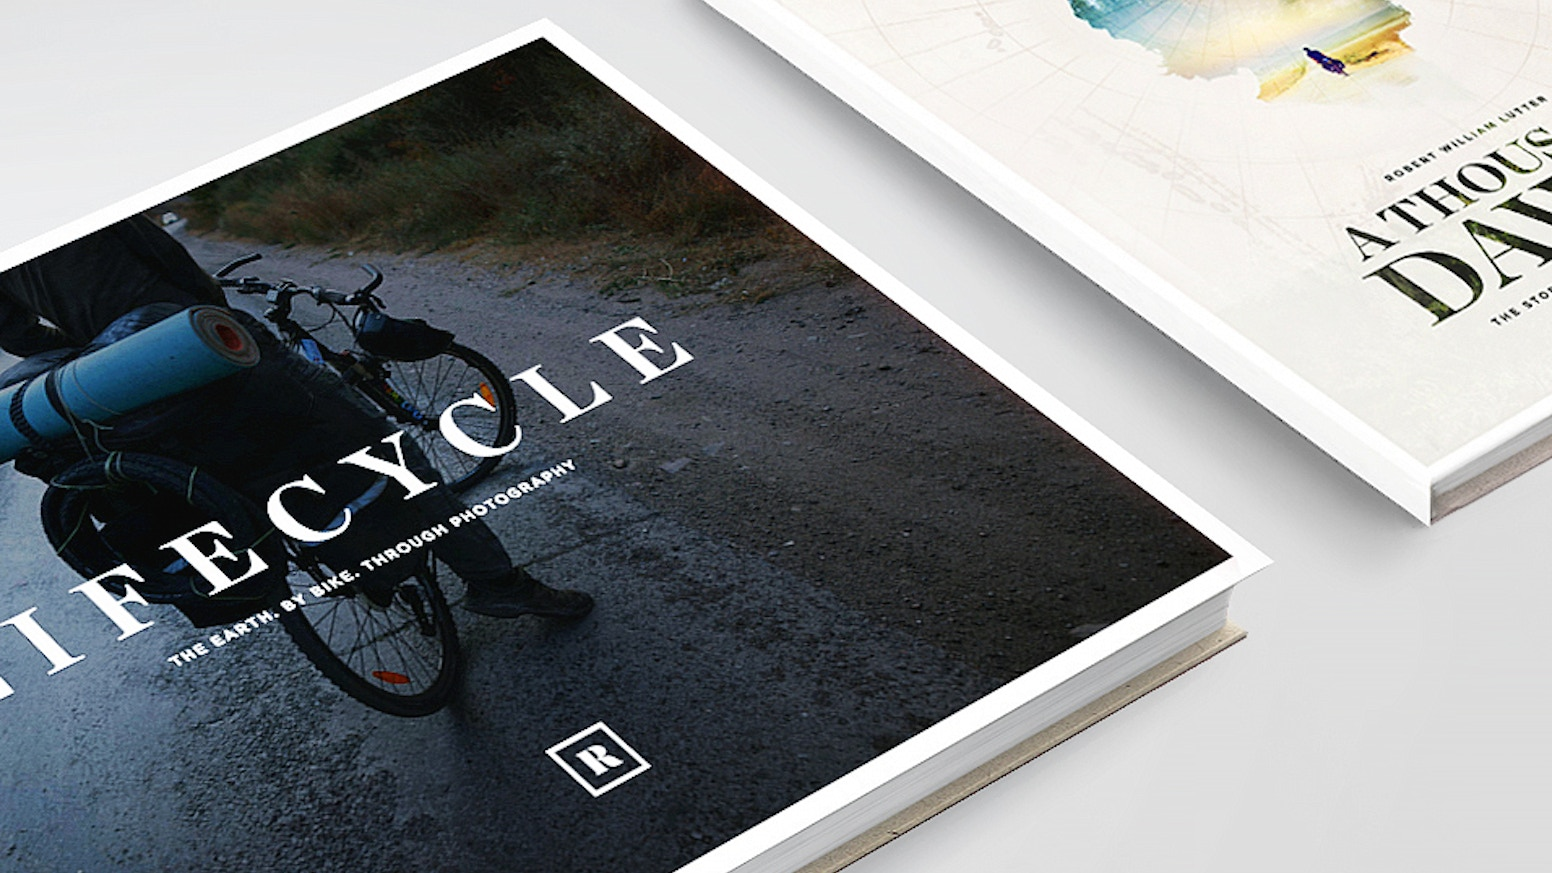 A 40,000km, 4 year journey by bicycle around the world, told through tales of adventure & photography.